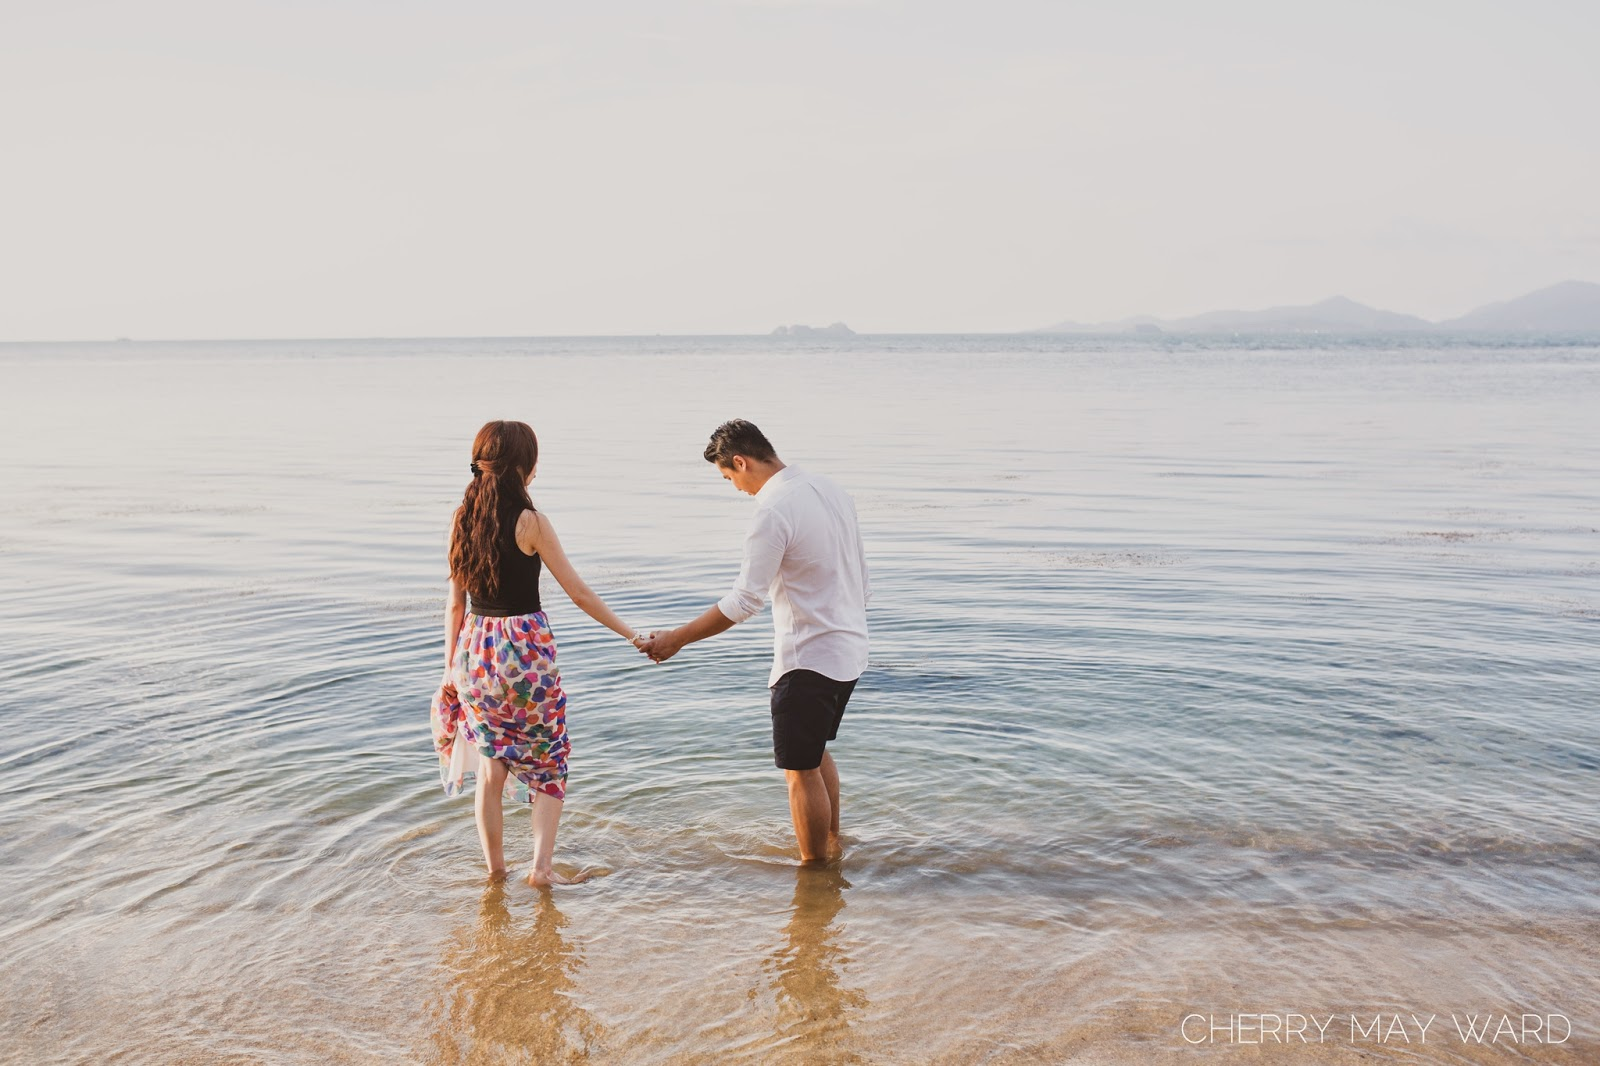 Couple's engagement session on the beach at Koh Samui, holding hands in the water enjoying the sunset, beautiful beach setting for engagement photos on Koh Samui